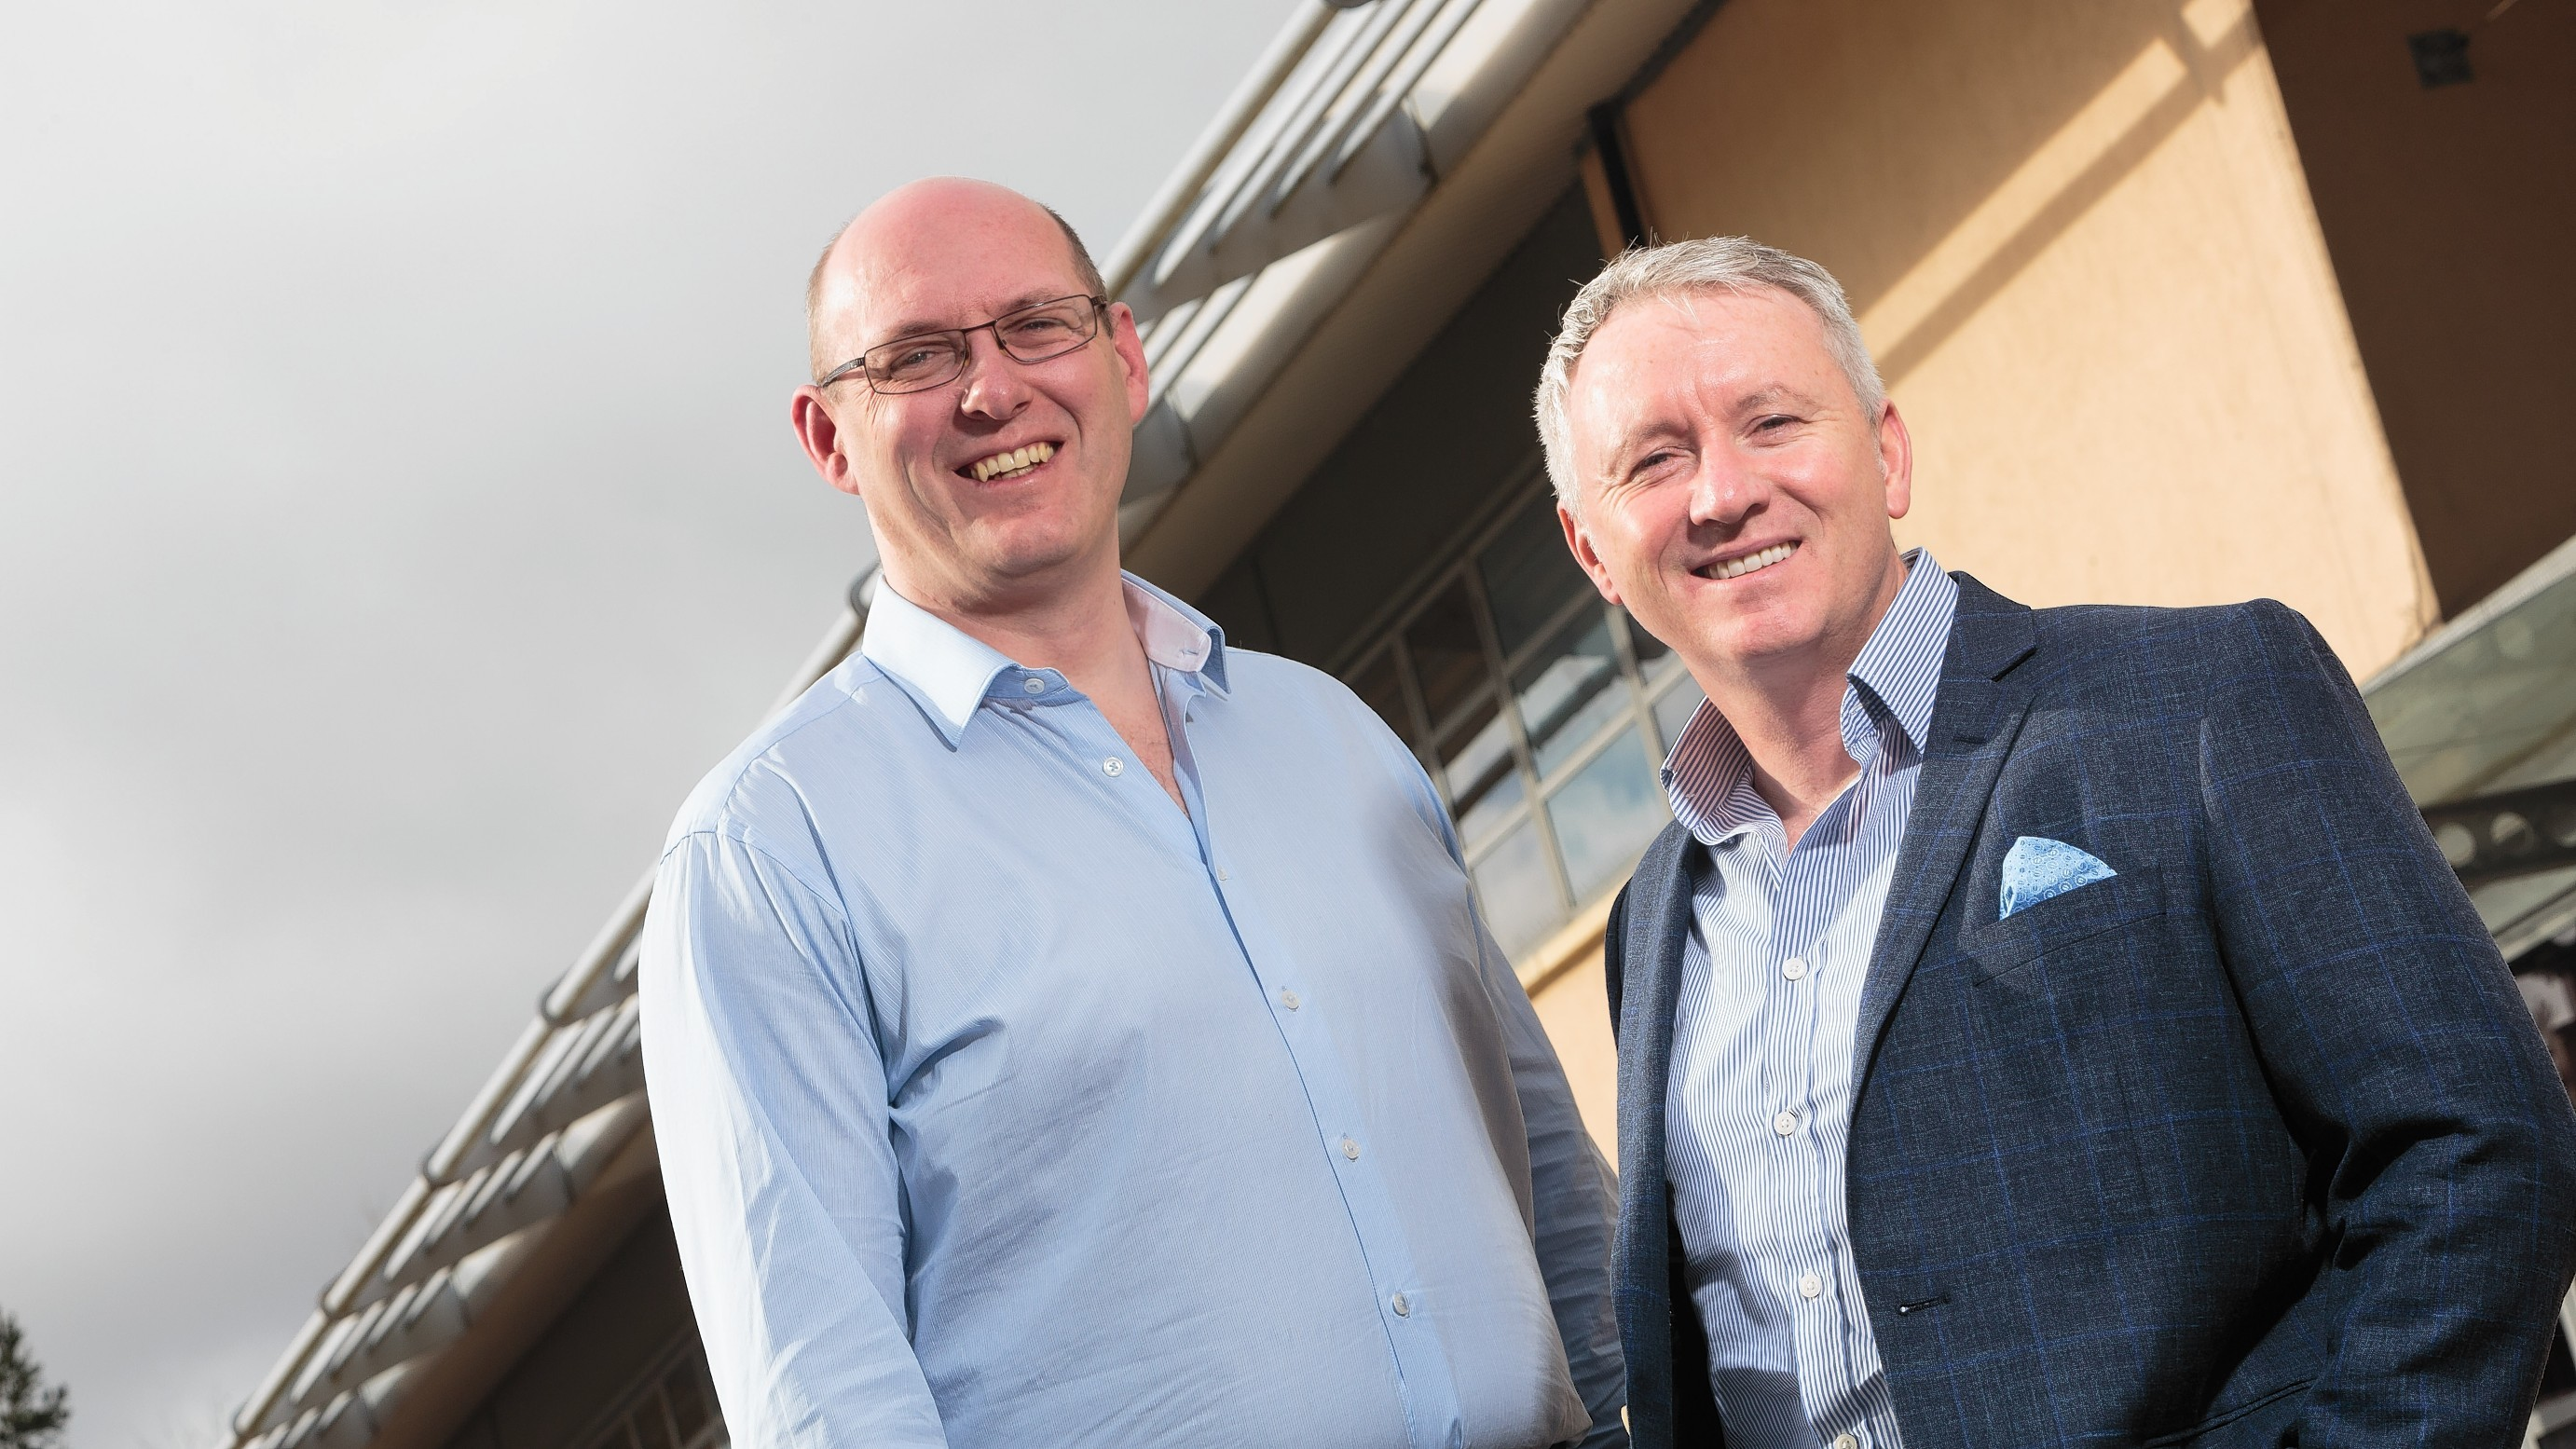 Jeff Soal, Chief Strategic Development Officer at Iqarus and Ged Healy who joins from Exmed as Executive Director (left to right)